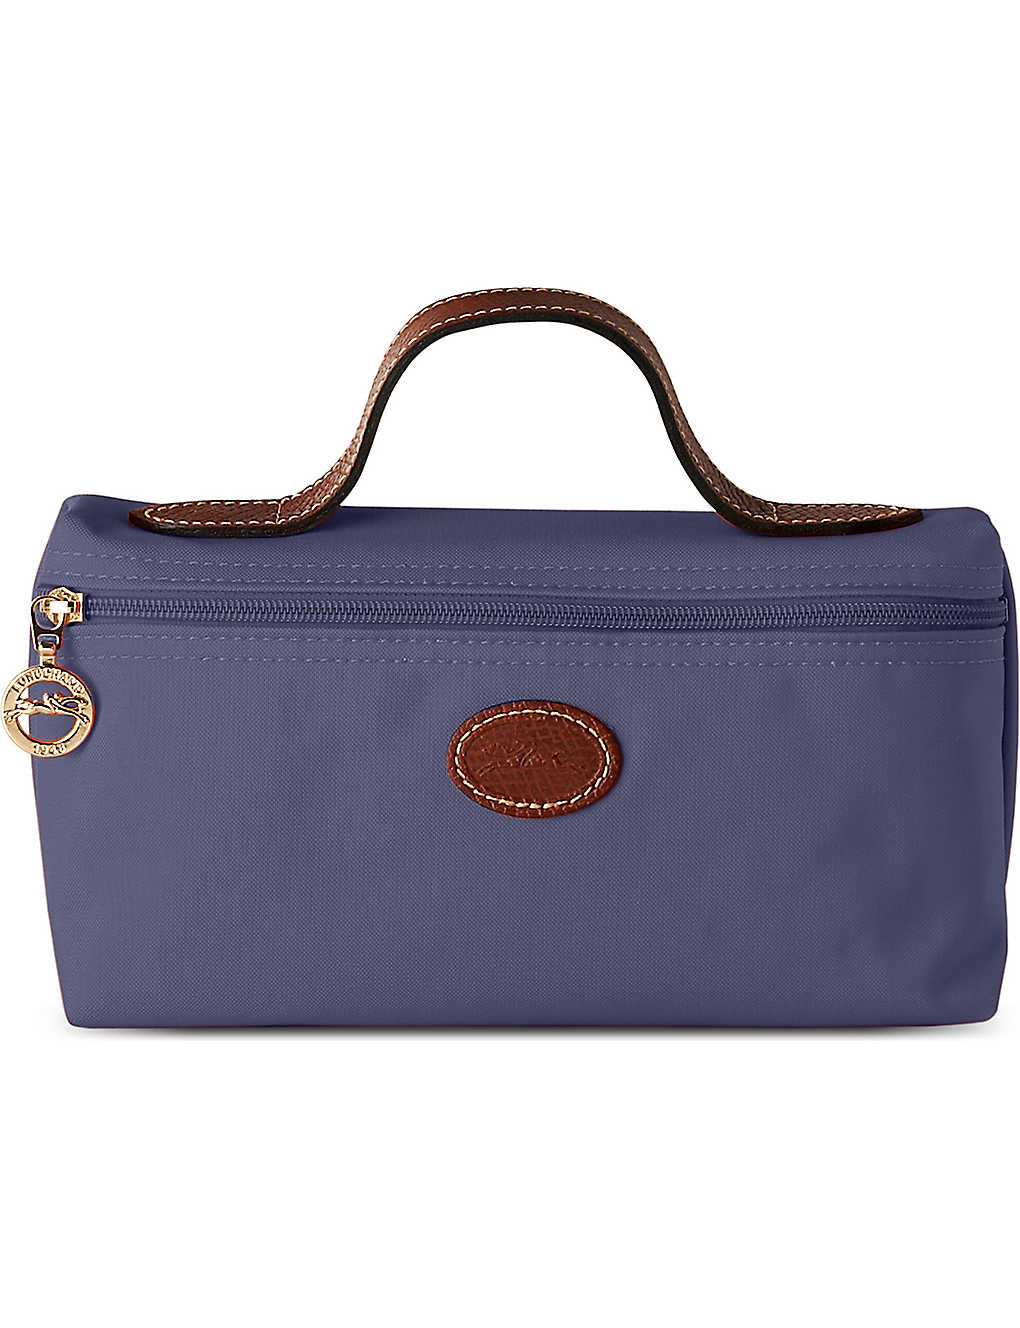 LONGCHAMP: Le Pliage make-up bag